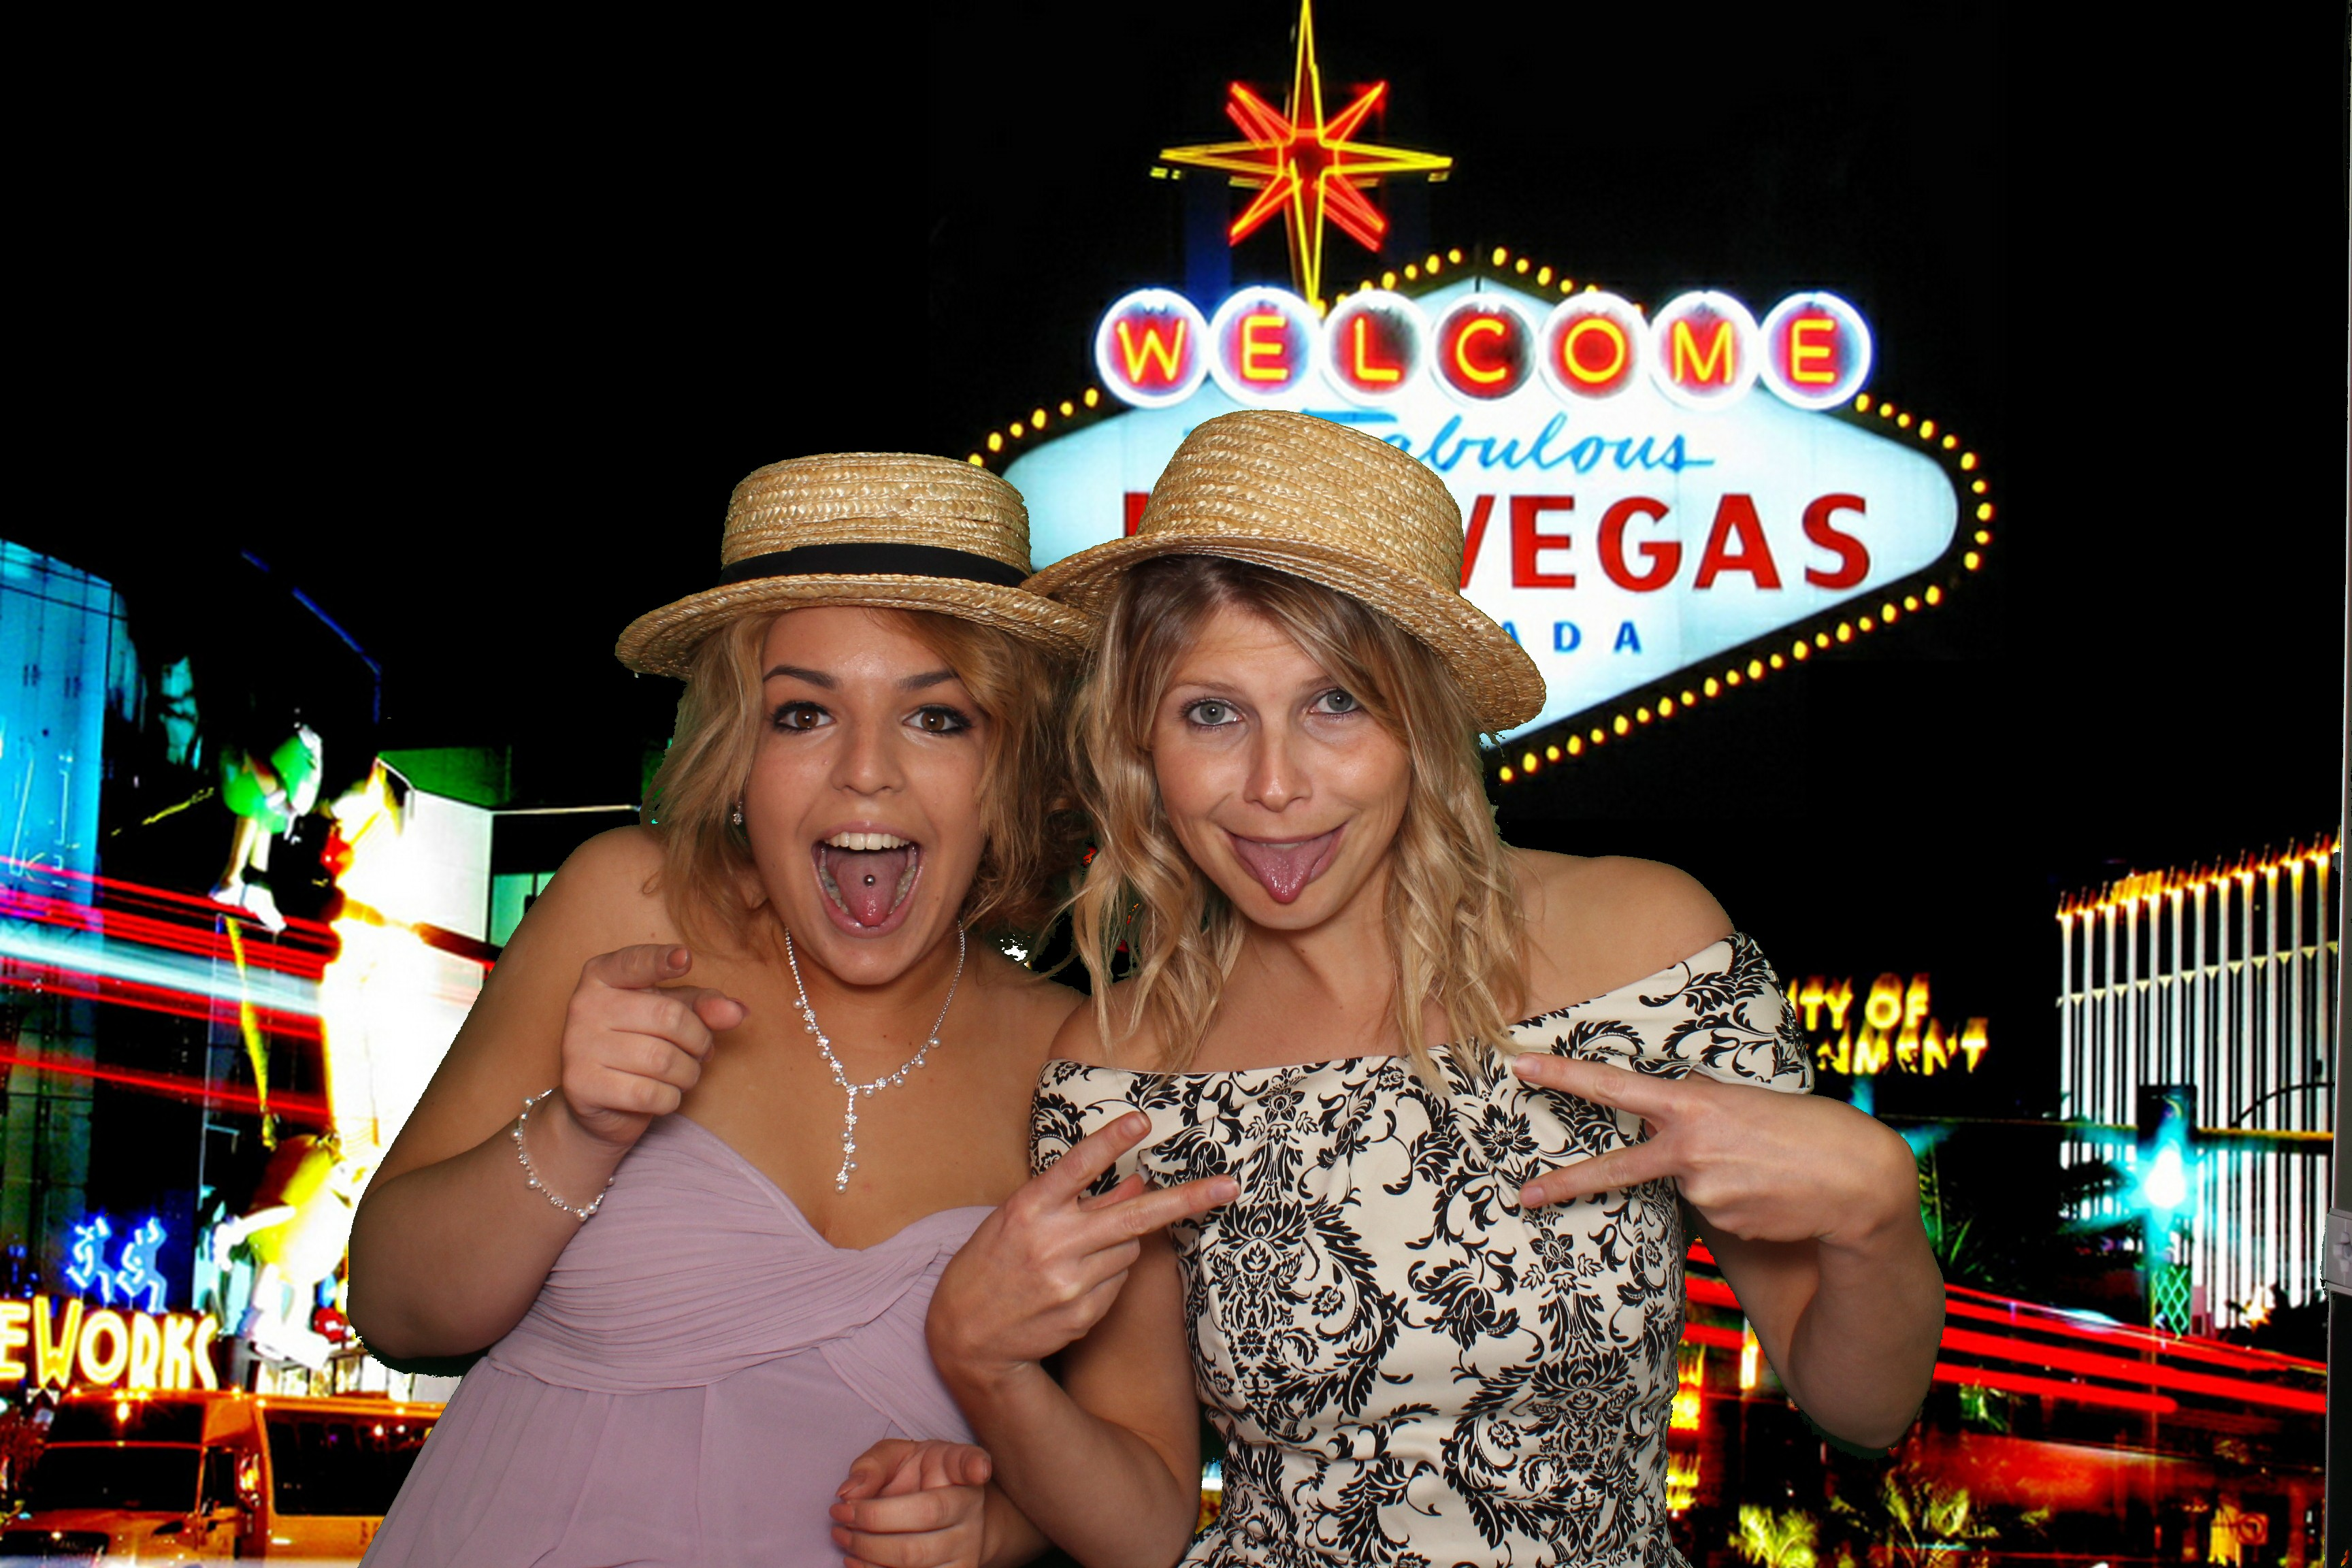 images shows two women in front of a greenscreen generated photo booth background